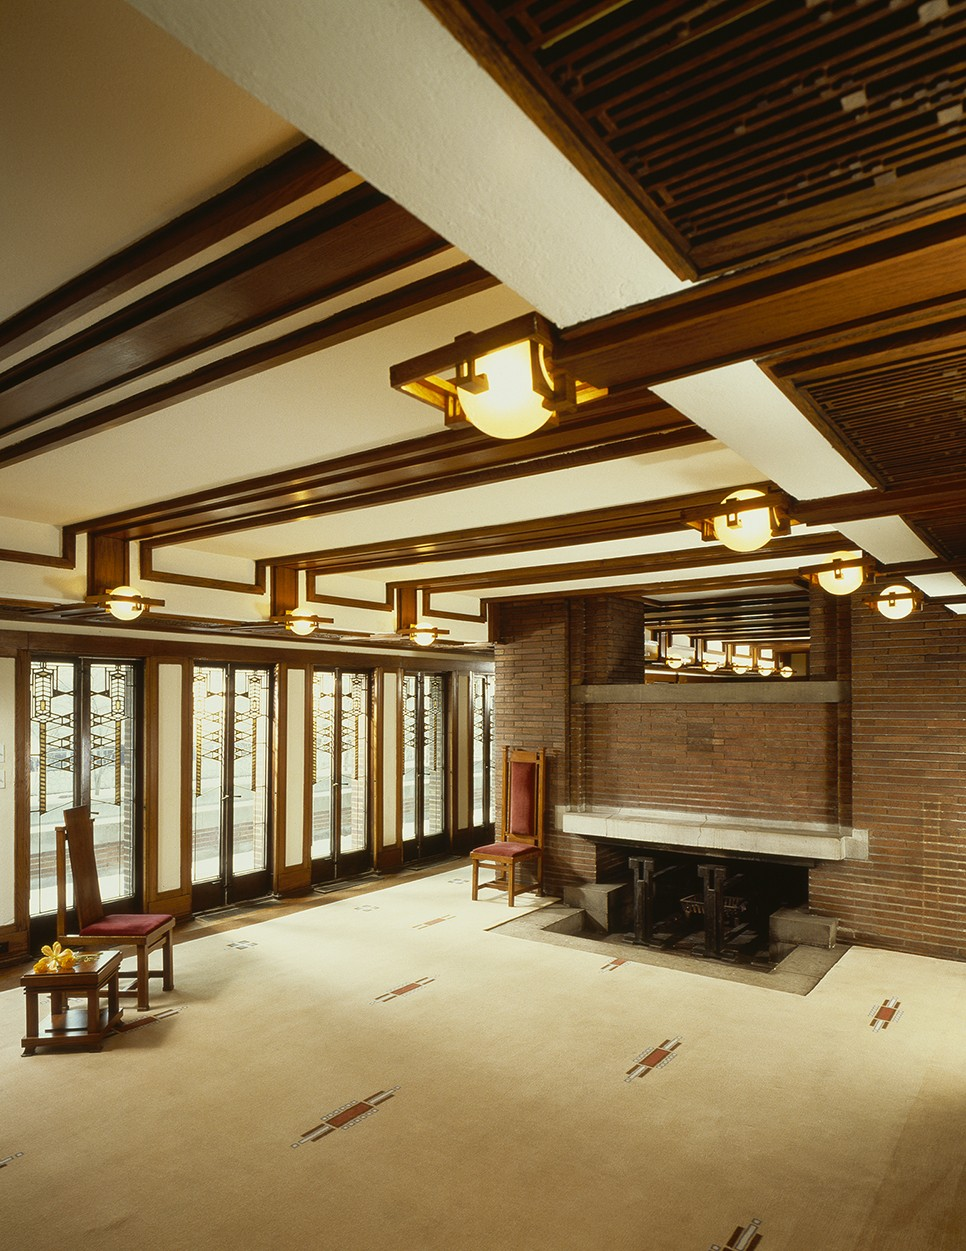 Residential gallery prairiearchitect frank lloyd wright for Architecture and design